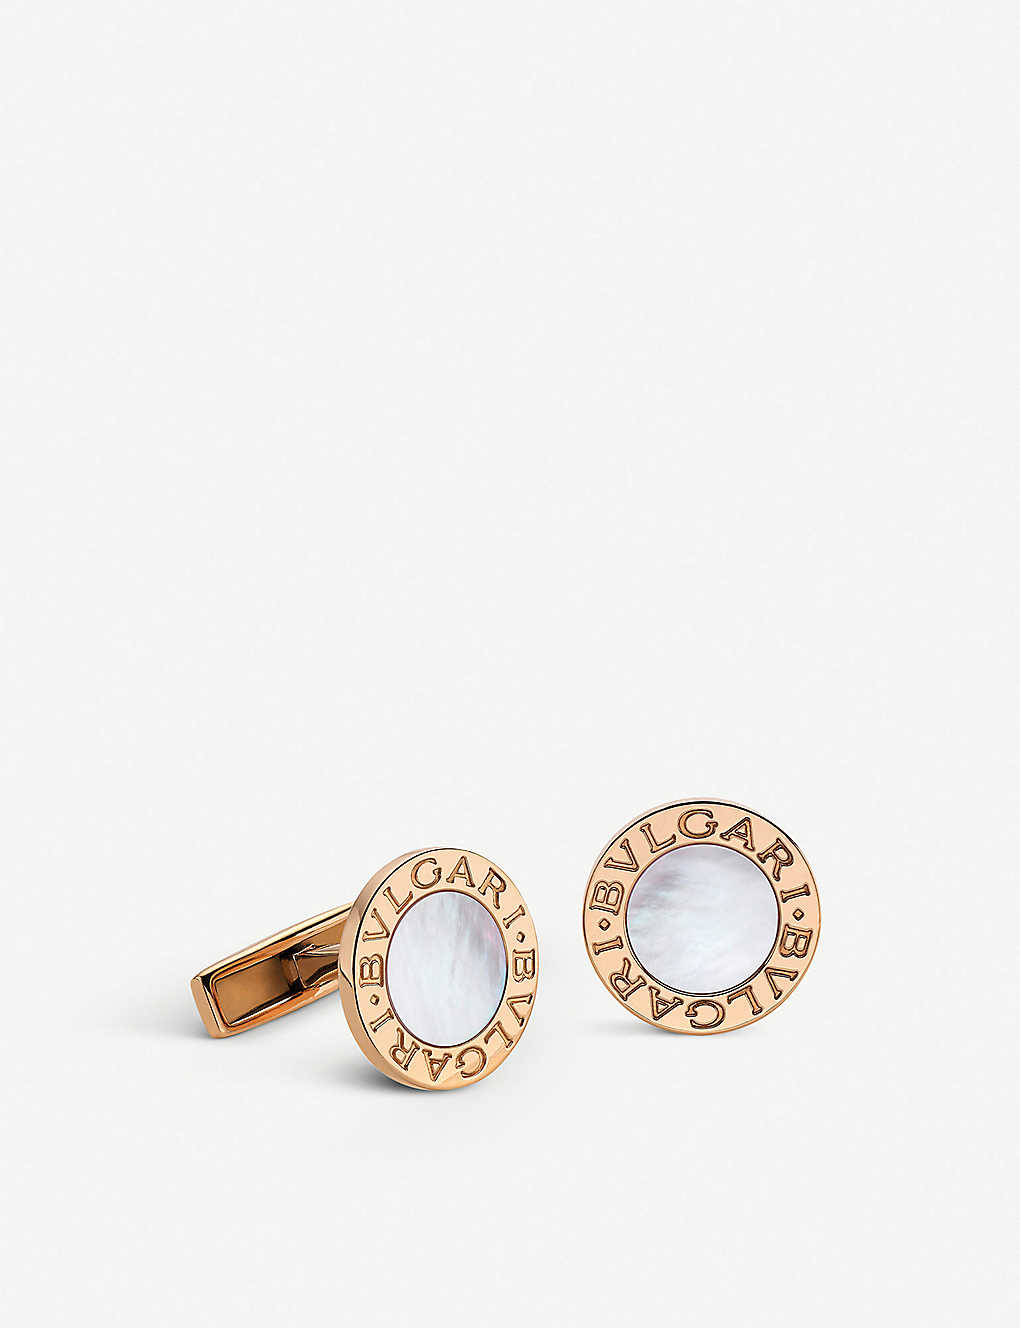 BVLGARI: BVLGARI-BVLGARI 18kt pink-gold and mother-of-pearl cufflinks